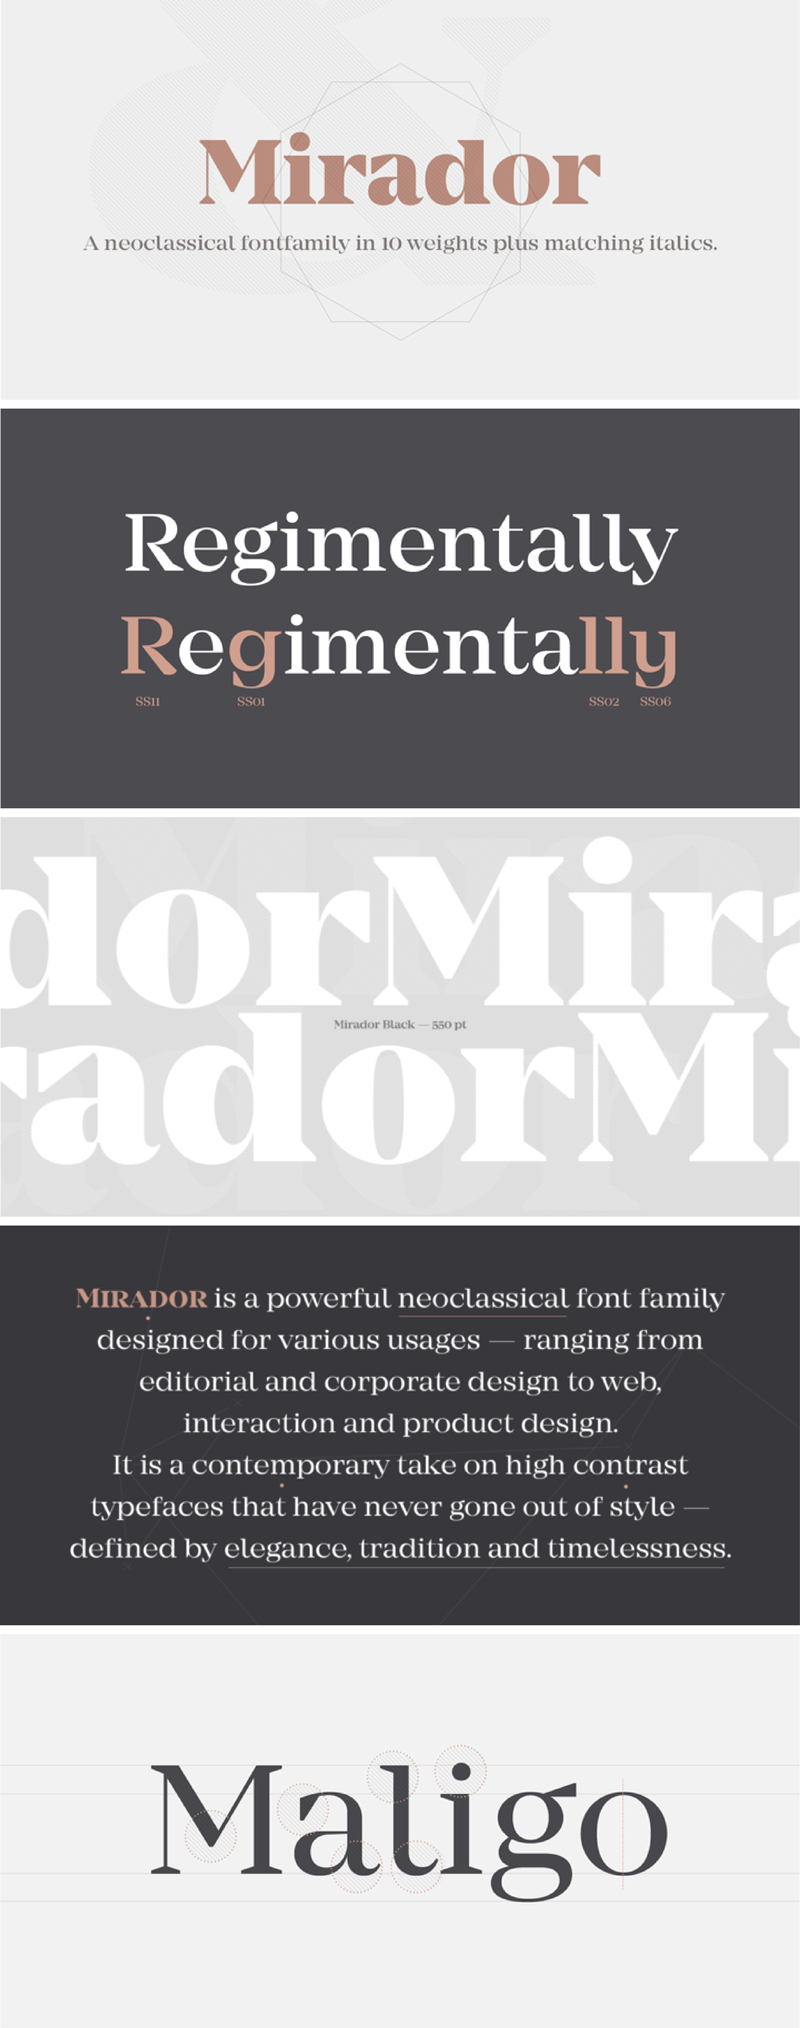 Mirador neoclassical font family